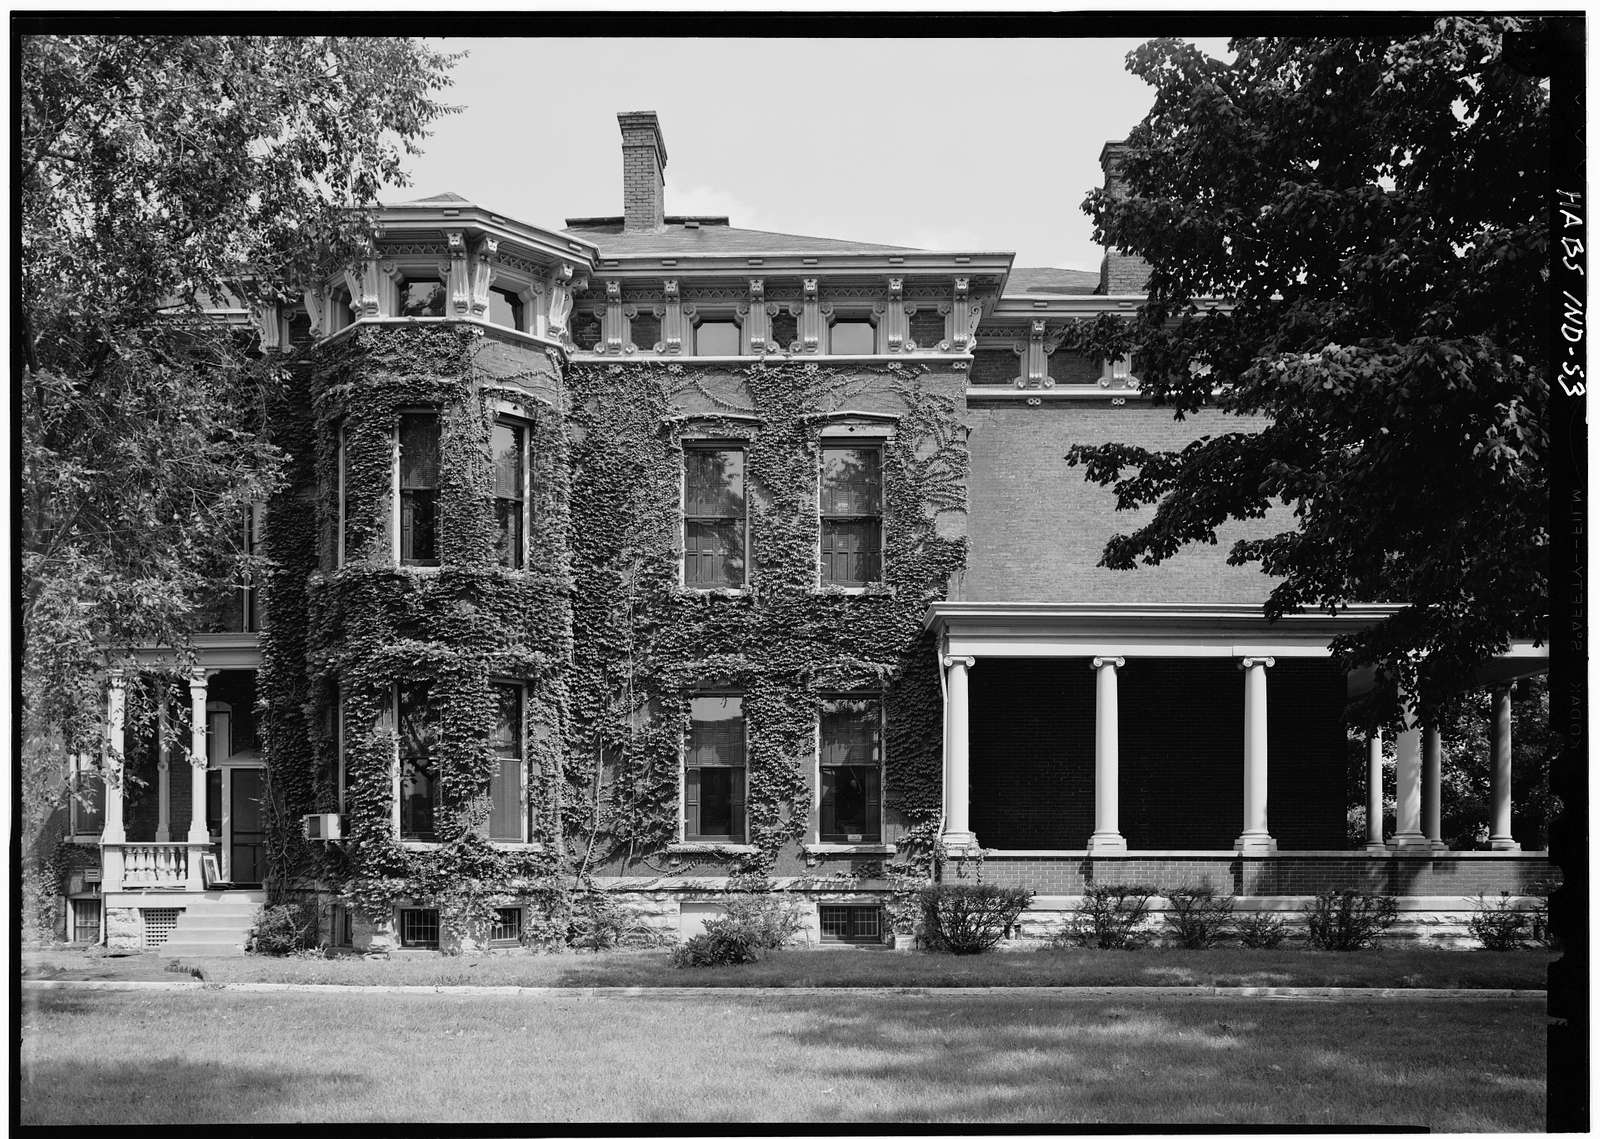 Benjamin Harrison House, 1230 North Delaware Street, Indianapolis, Marion County, IN